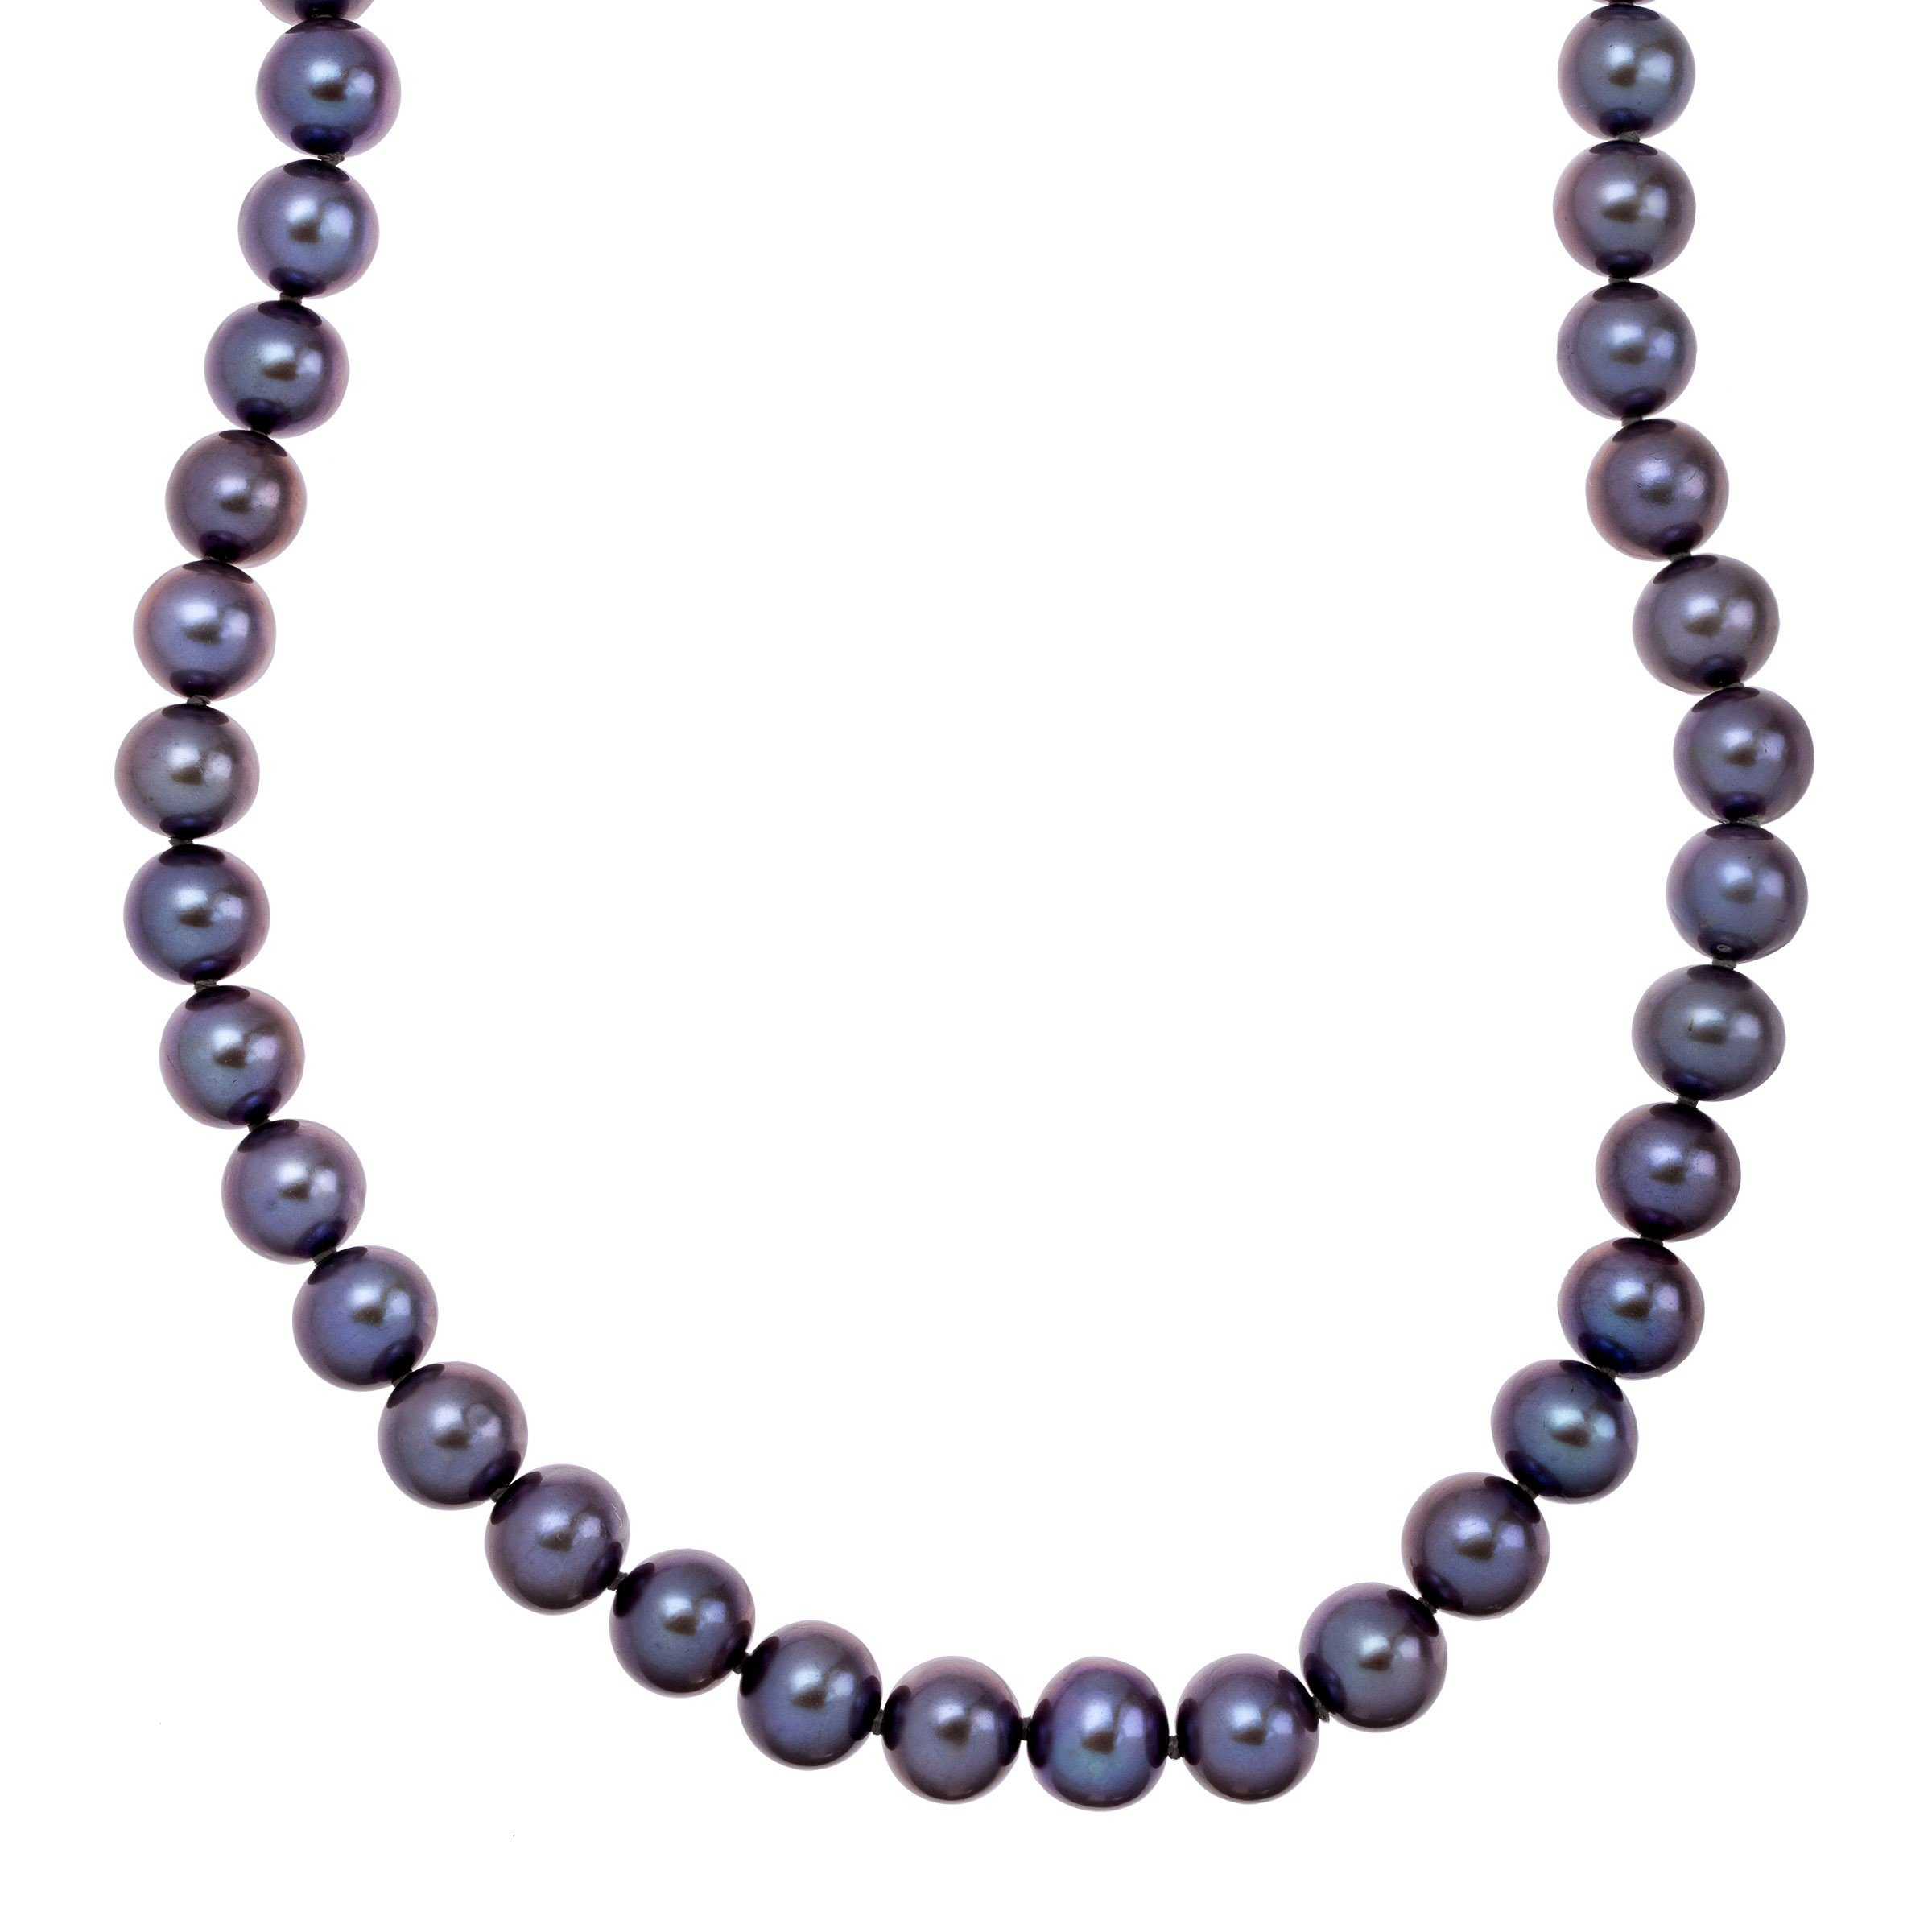 Honora 8-9 mm Black Freshwater Cultured Pearl Strand Necklace in 14K Gold by Honora